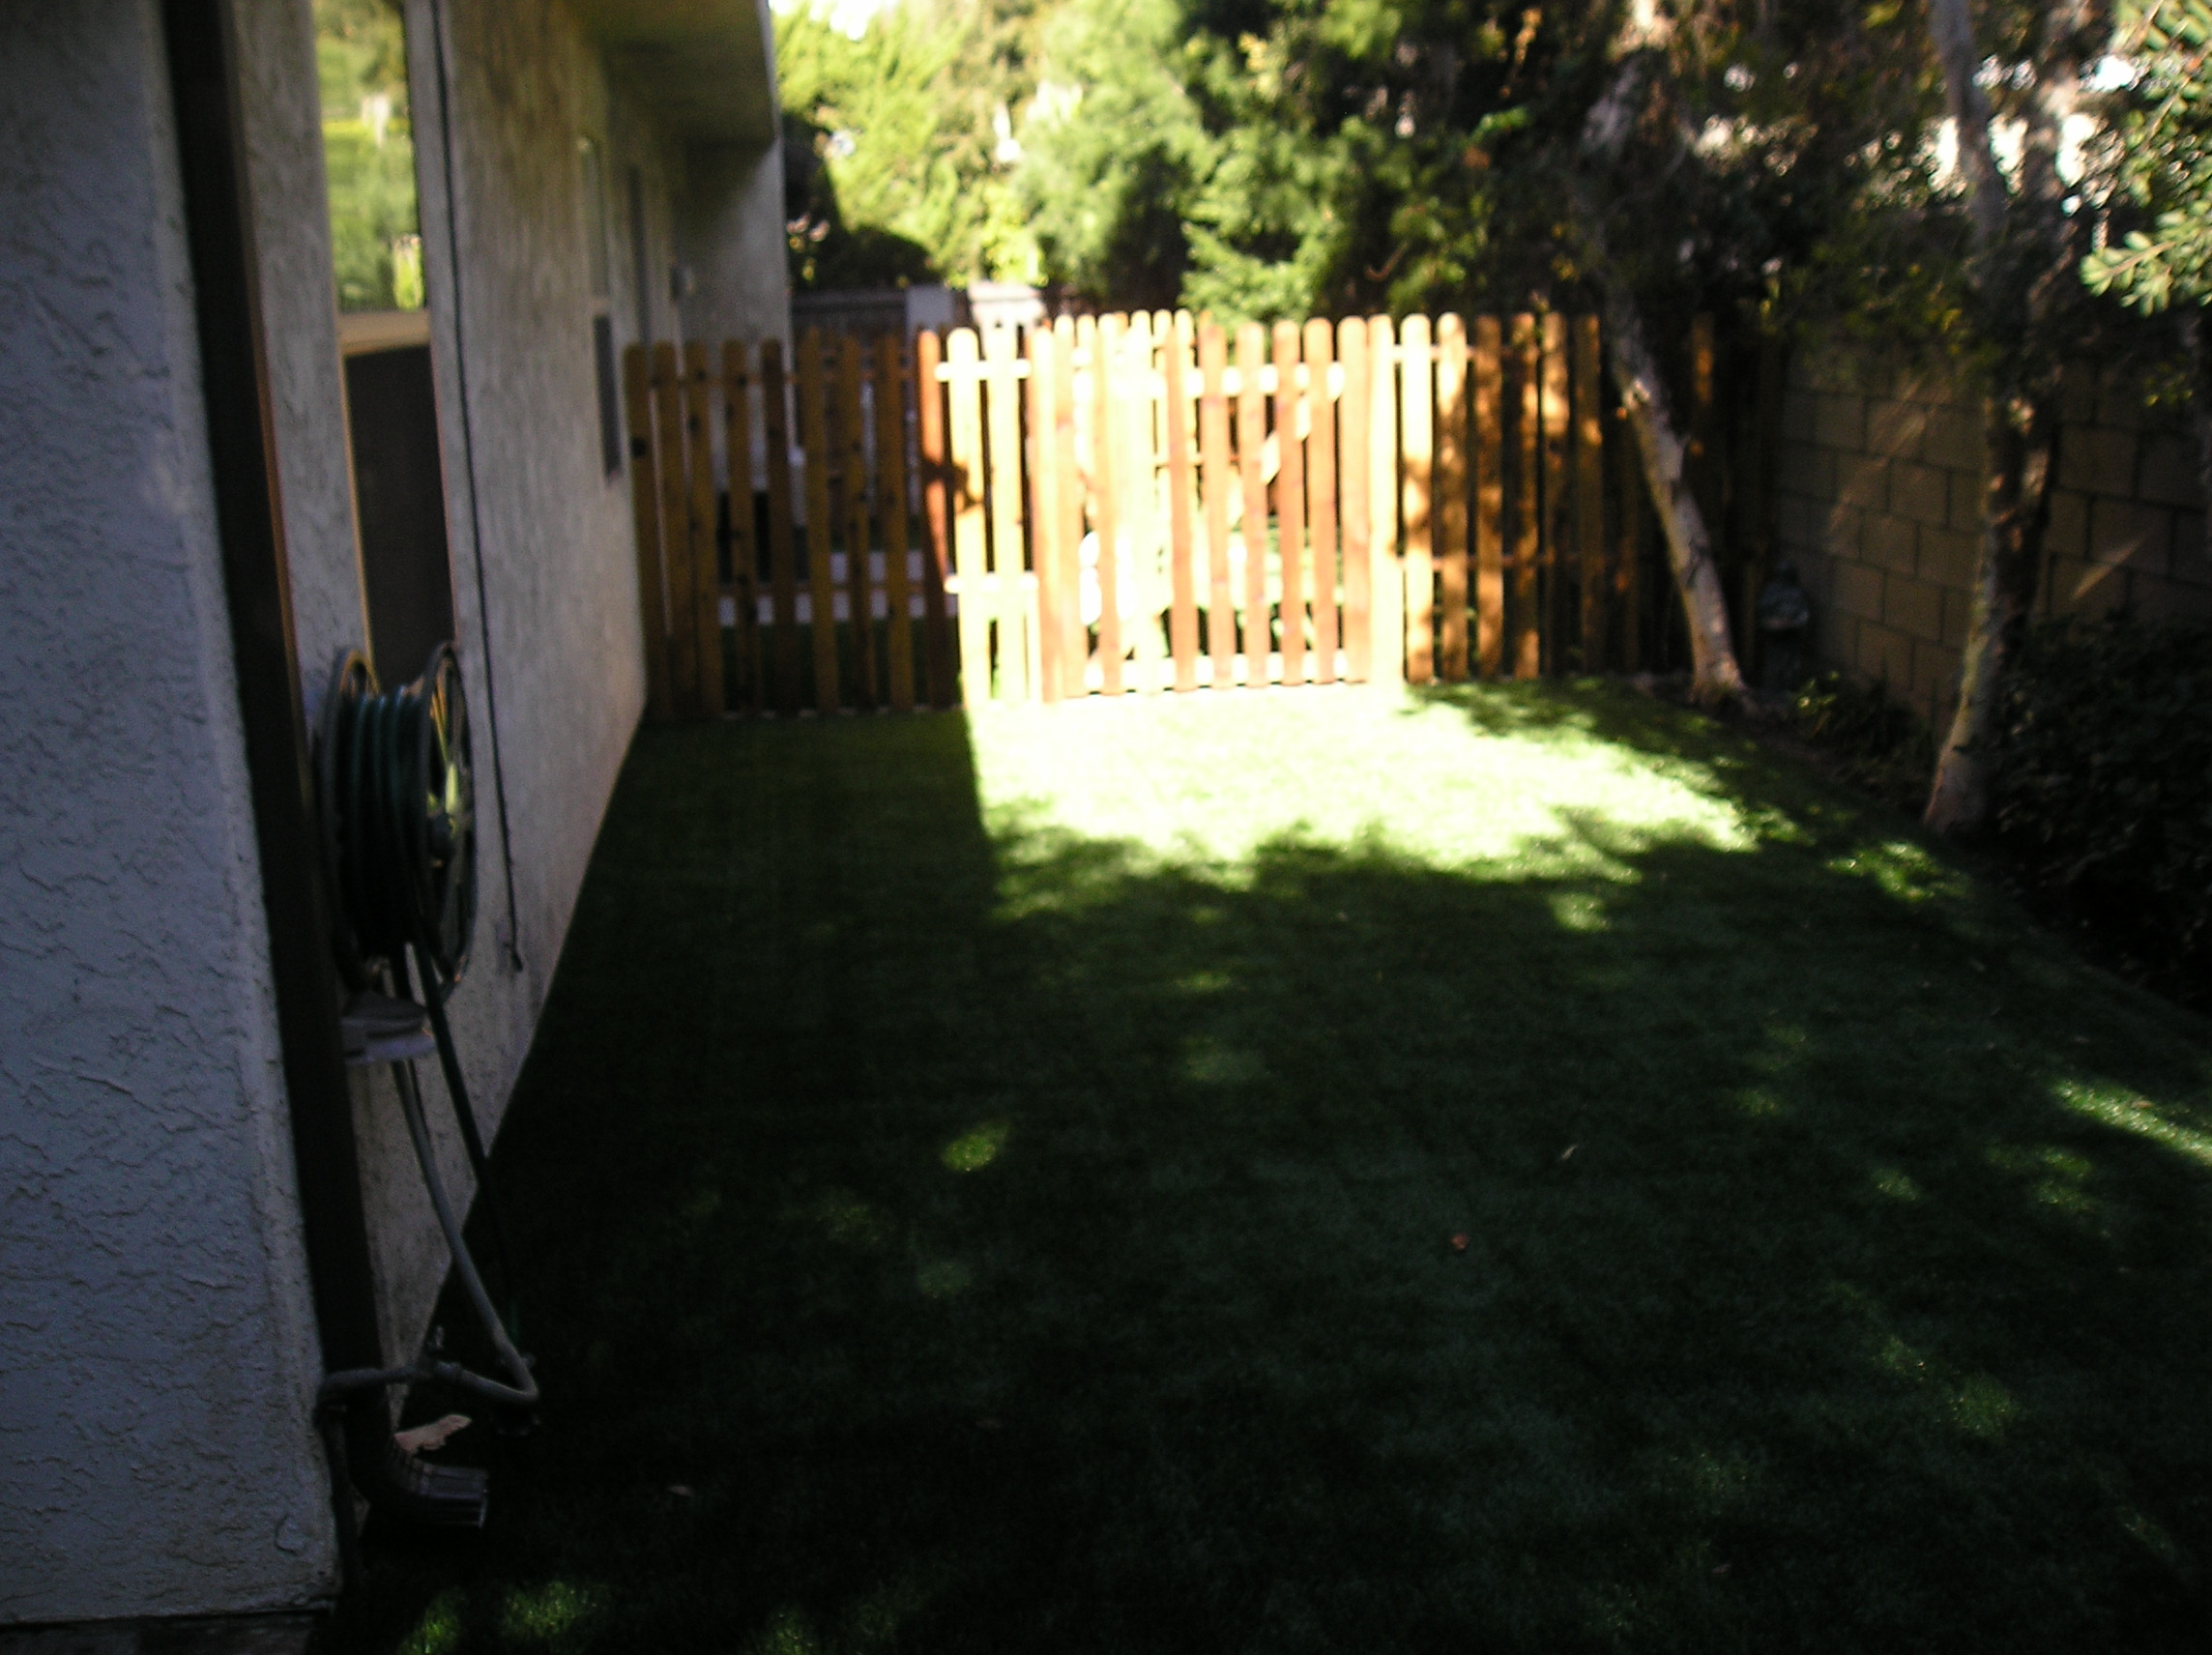 Super Natural 60 backyard turf,turf backyard,fake grass for backyard,fake grass backyard,artificial grass backyard,fake grass for yard,backyard turf,turf backyard,turf yard,fake grass for backyard